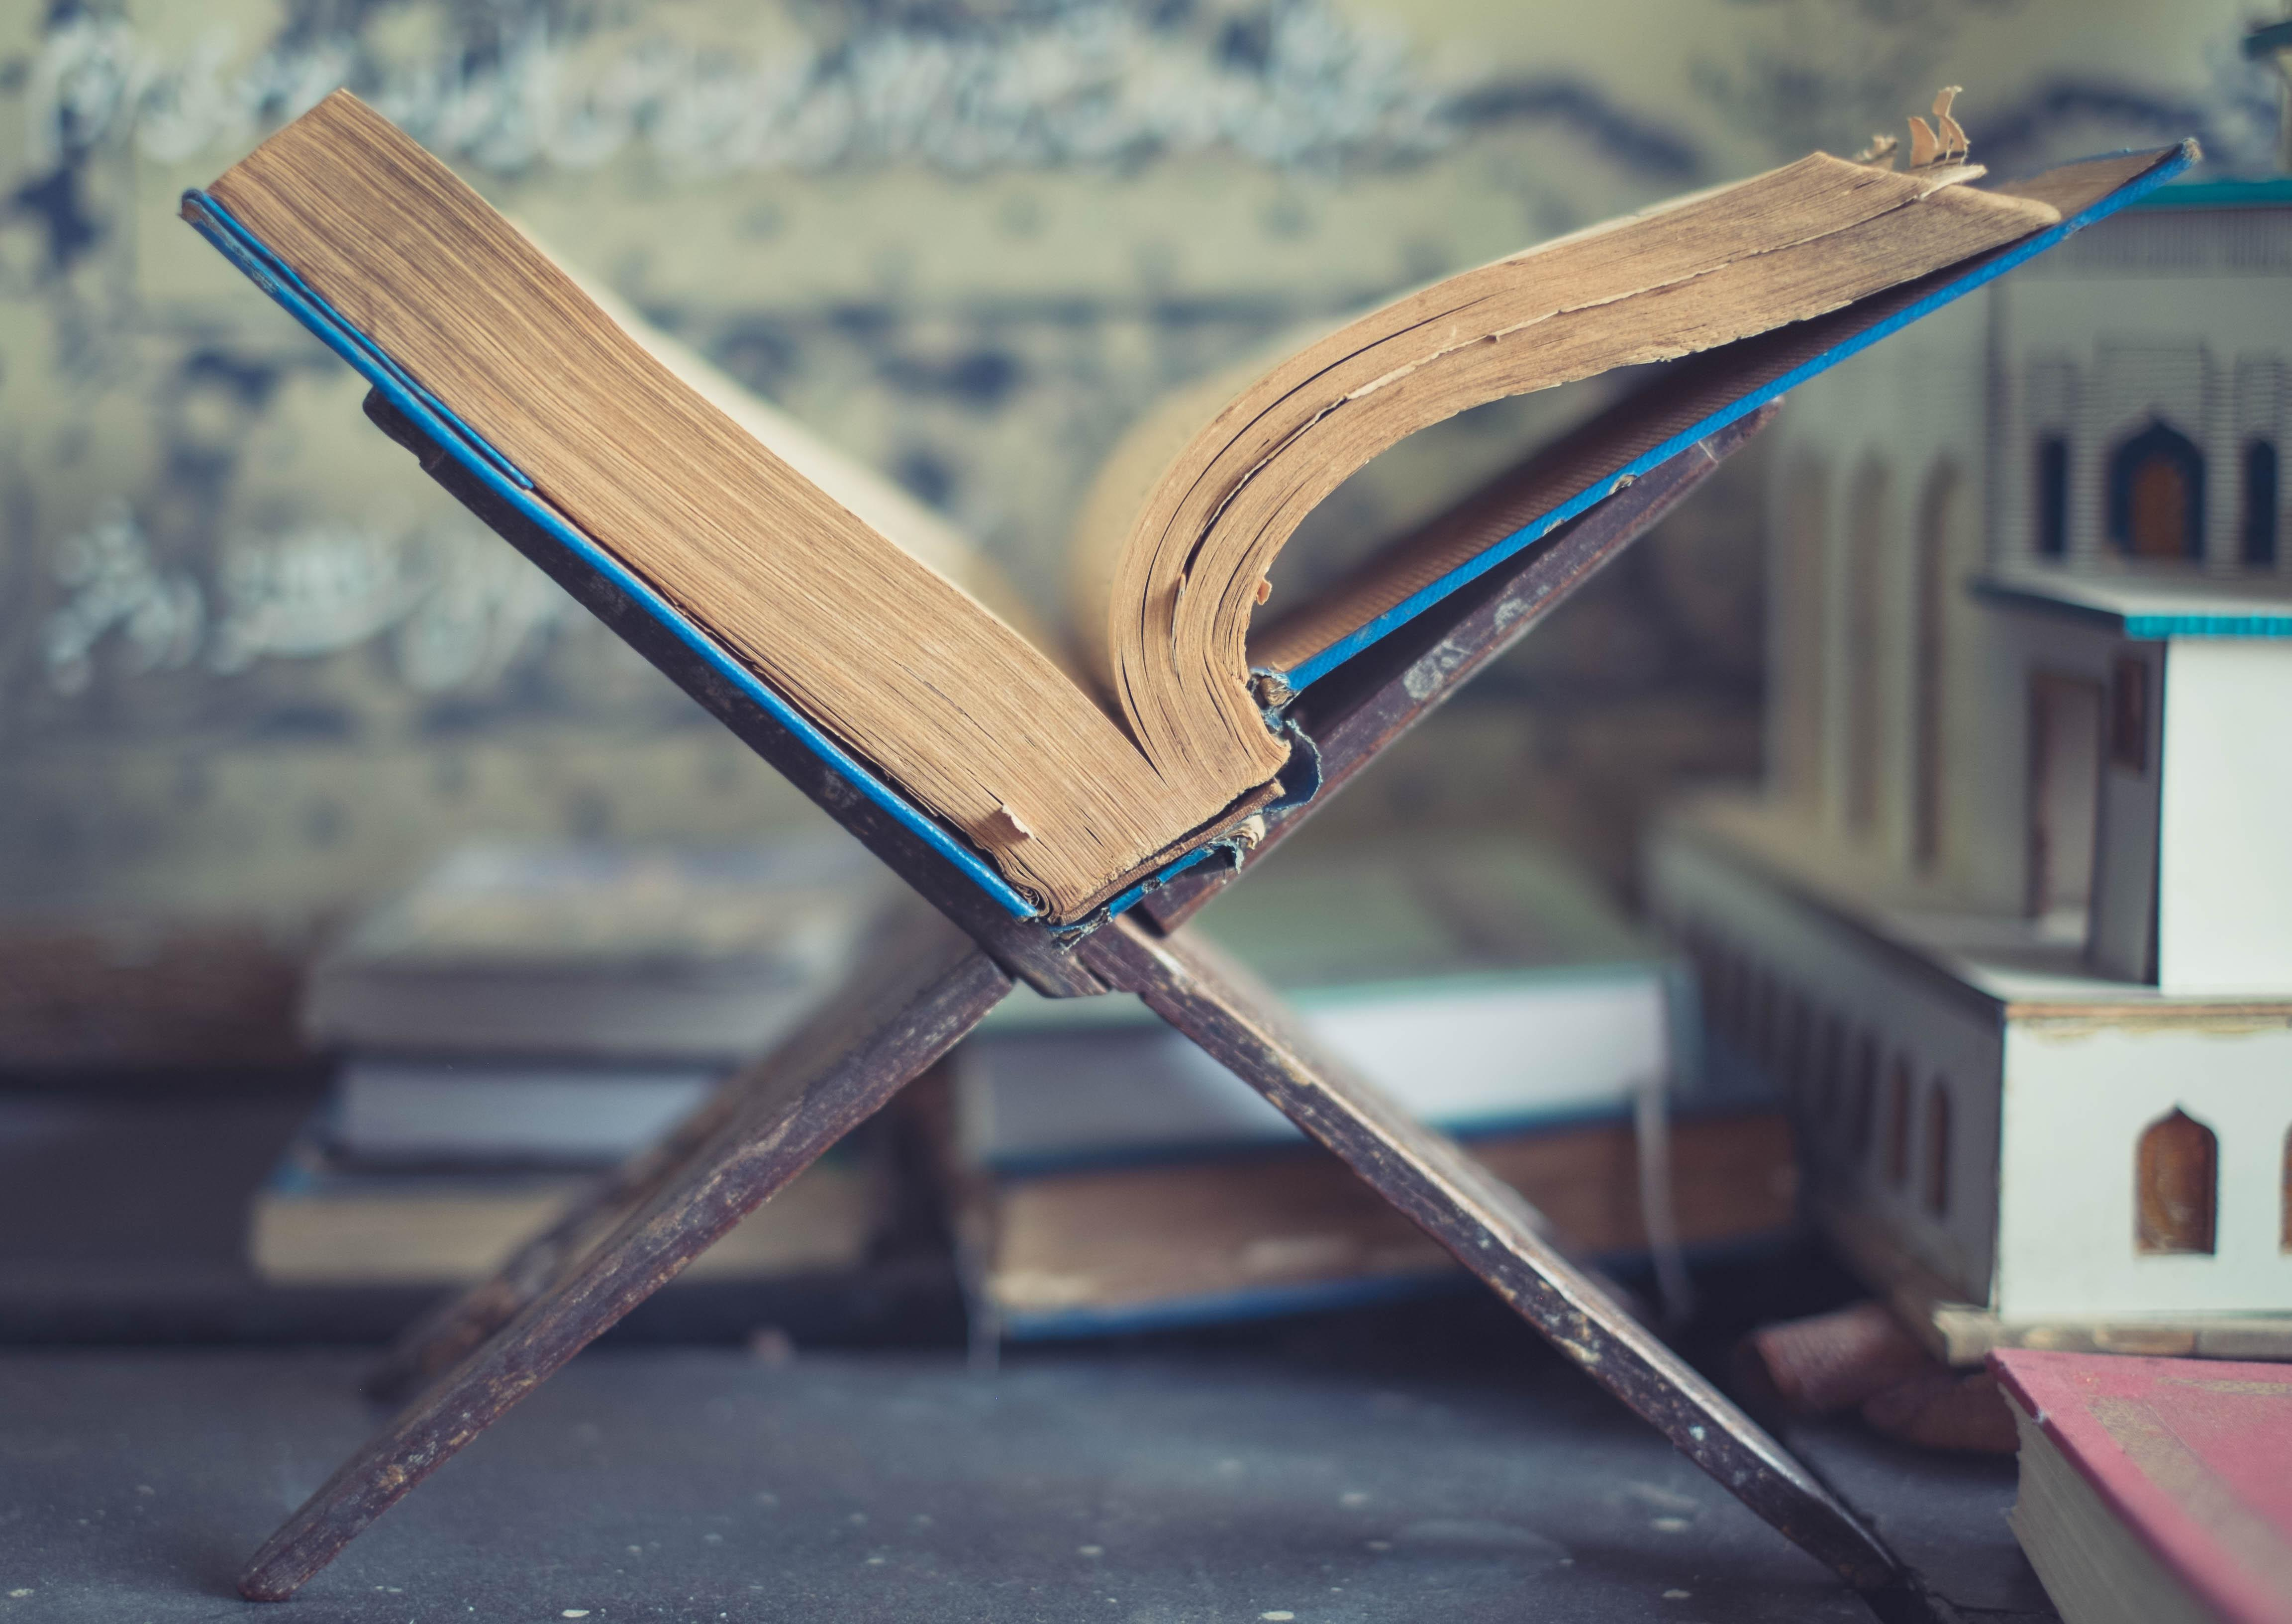 A book lies open in the middle, propped up by a book stand. Out of focus, in the background are several other books and religious artifacts.